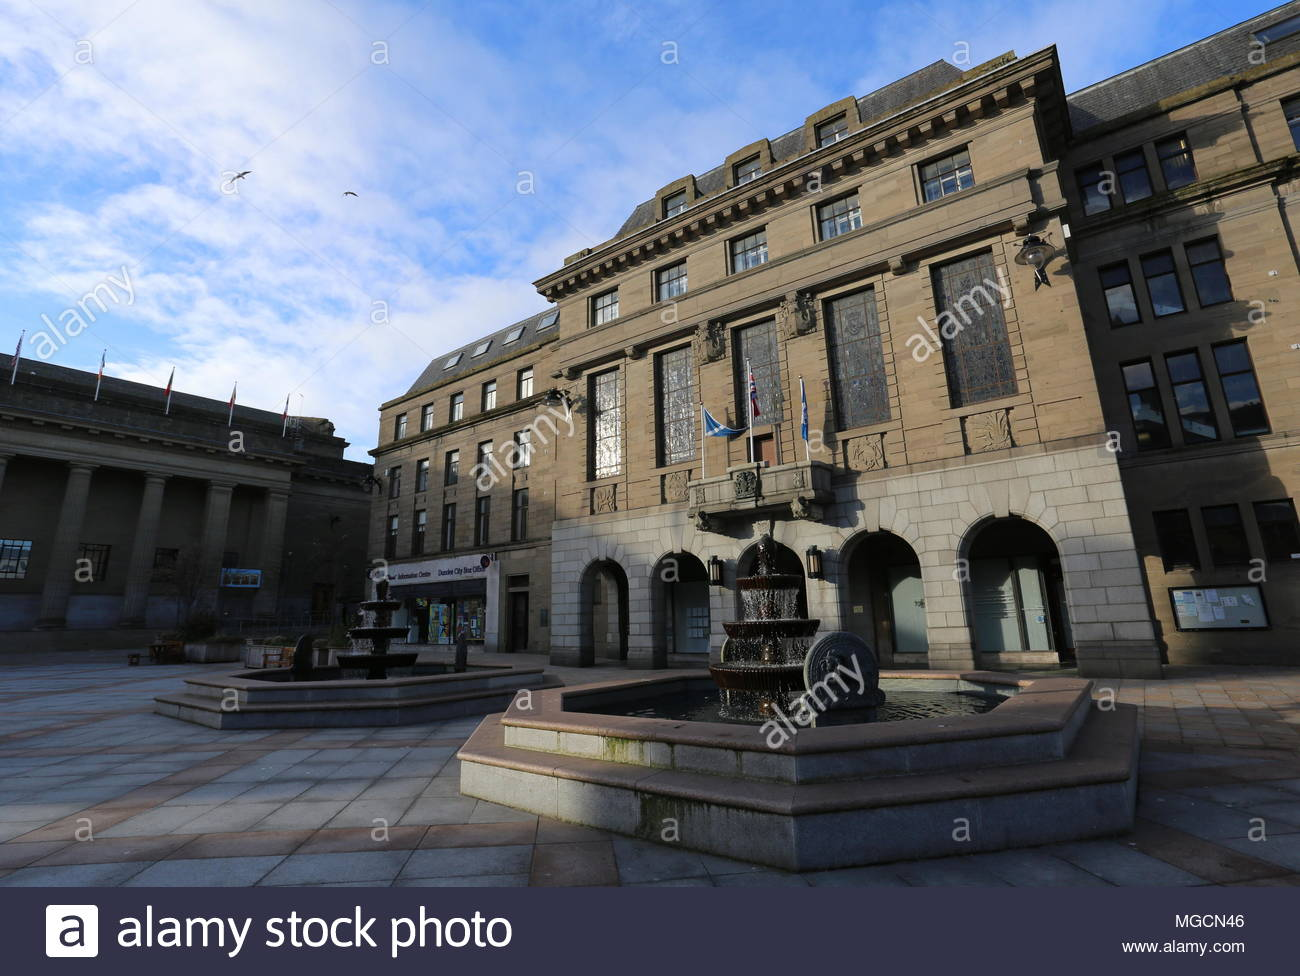 Fountain and The Chambers of Commerce, City Square Dundee Scotland  April 2018 - Stock Image